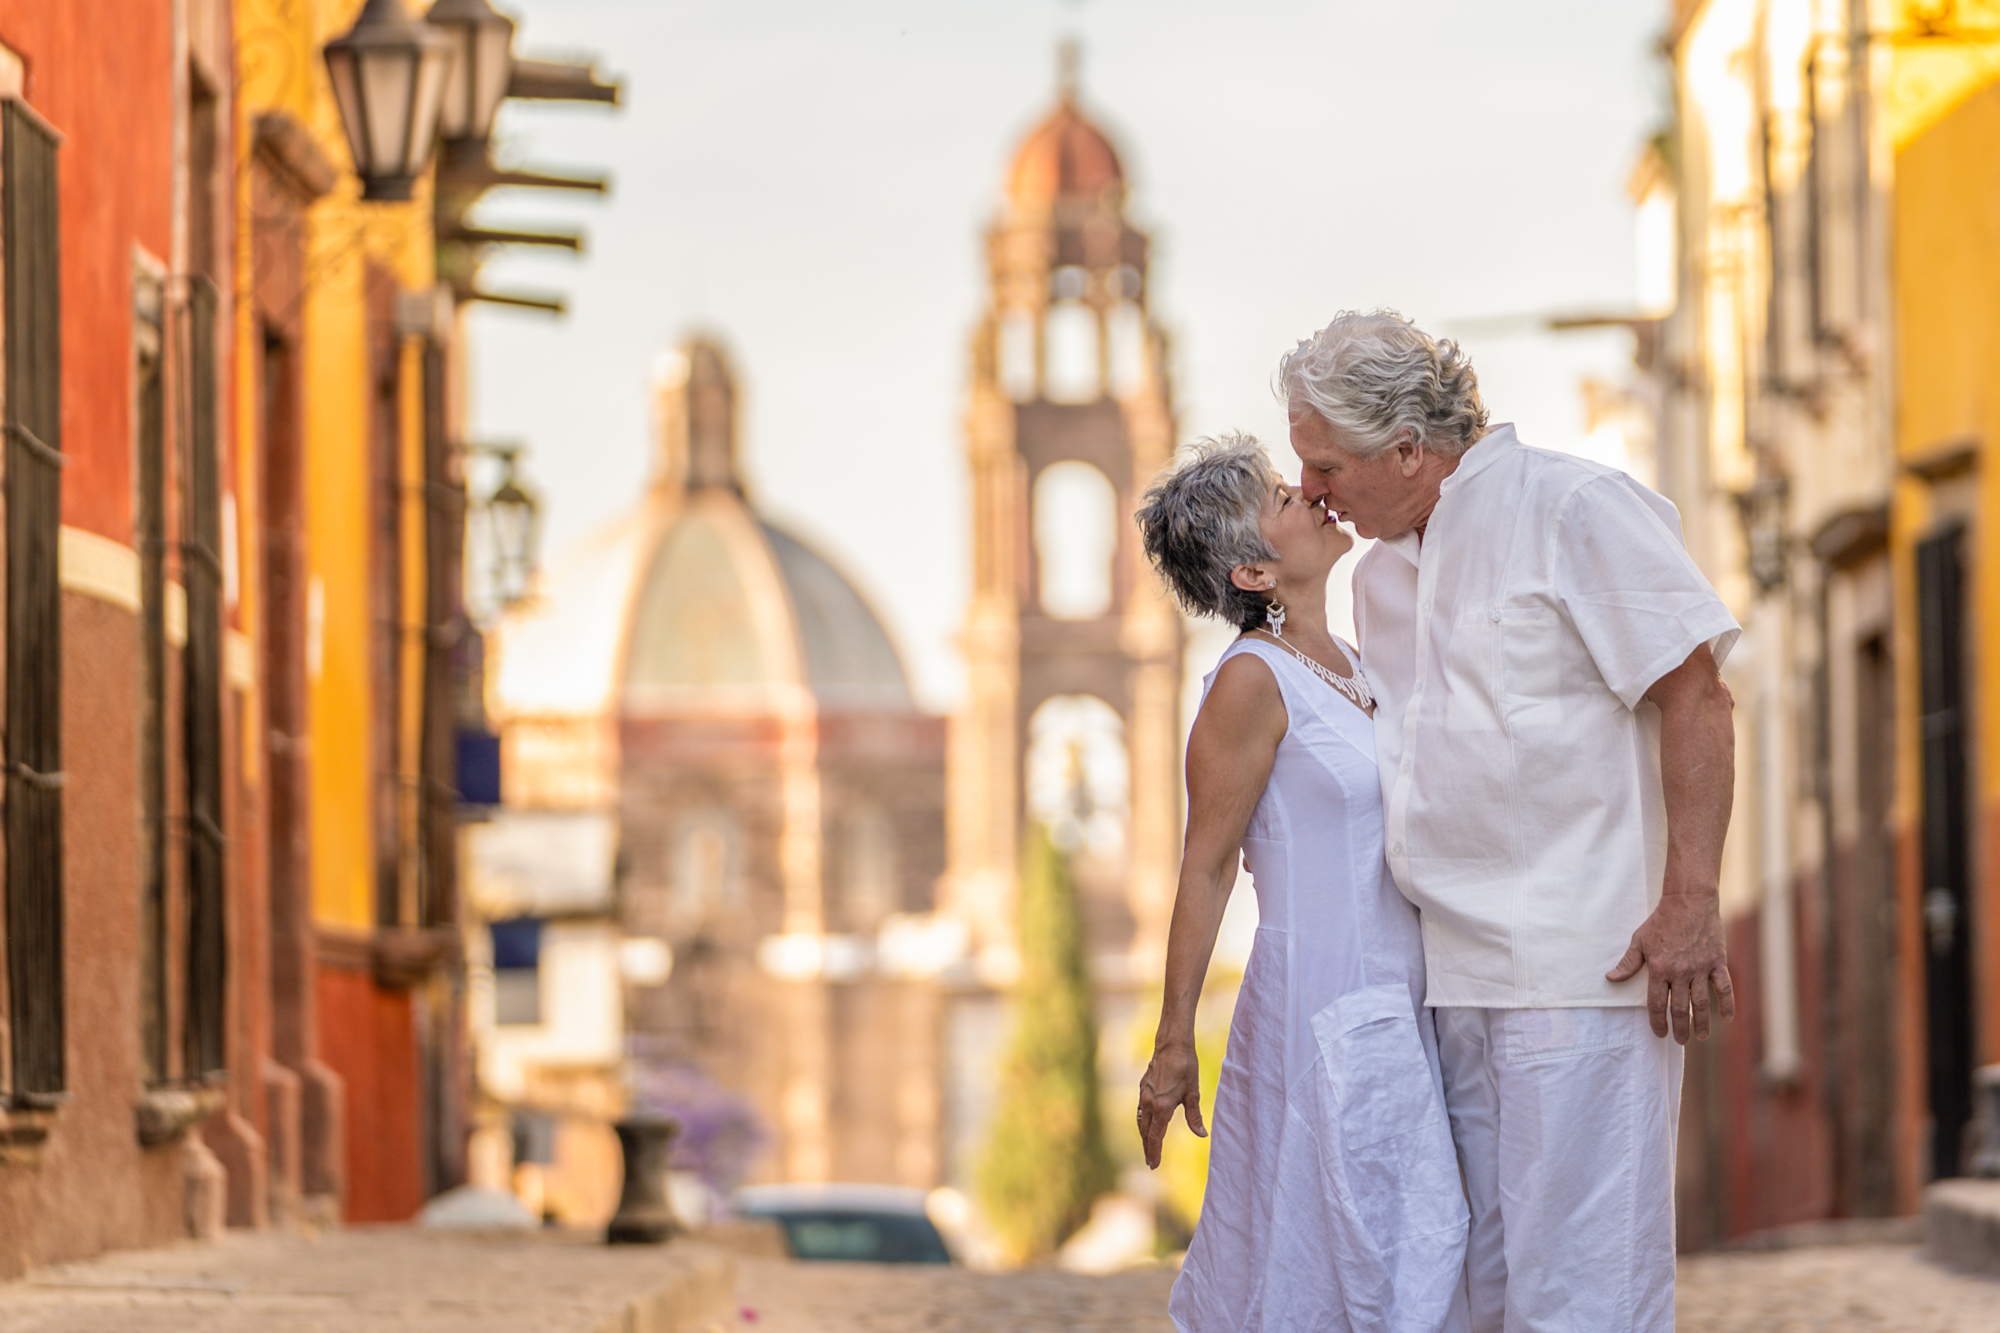 Photoshoot session in San Miguel de Allende with Suzanne and Leo-33.jpg